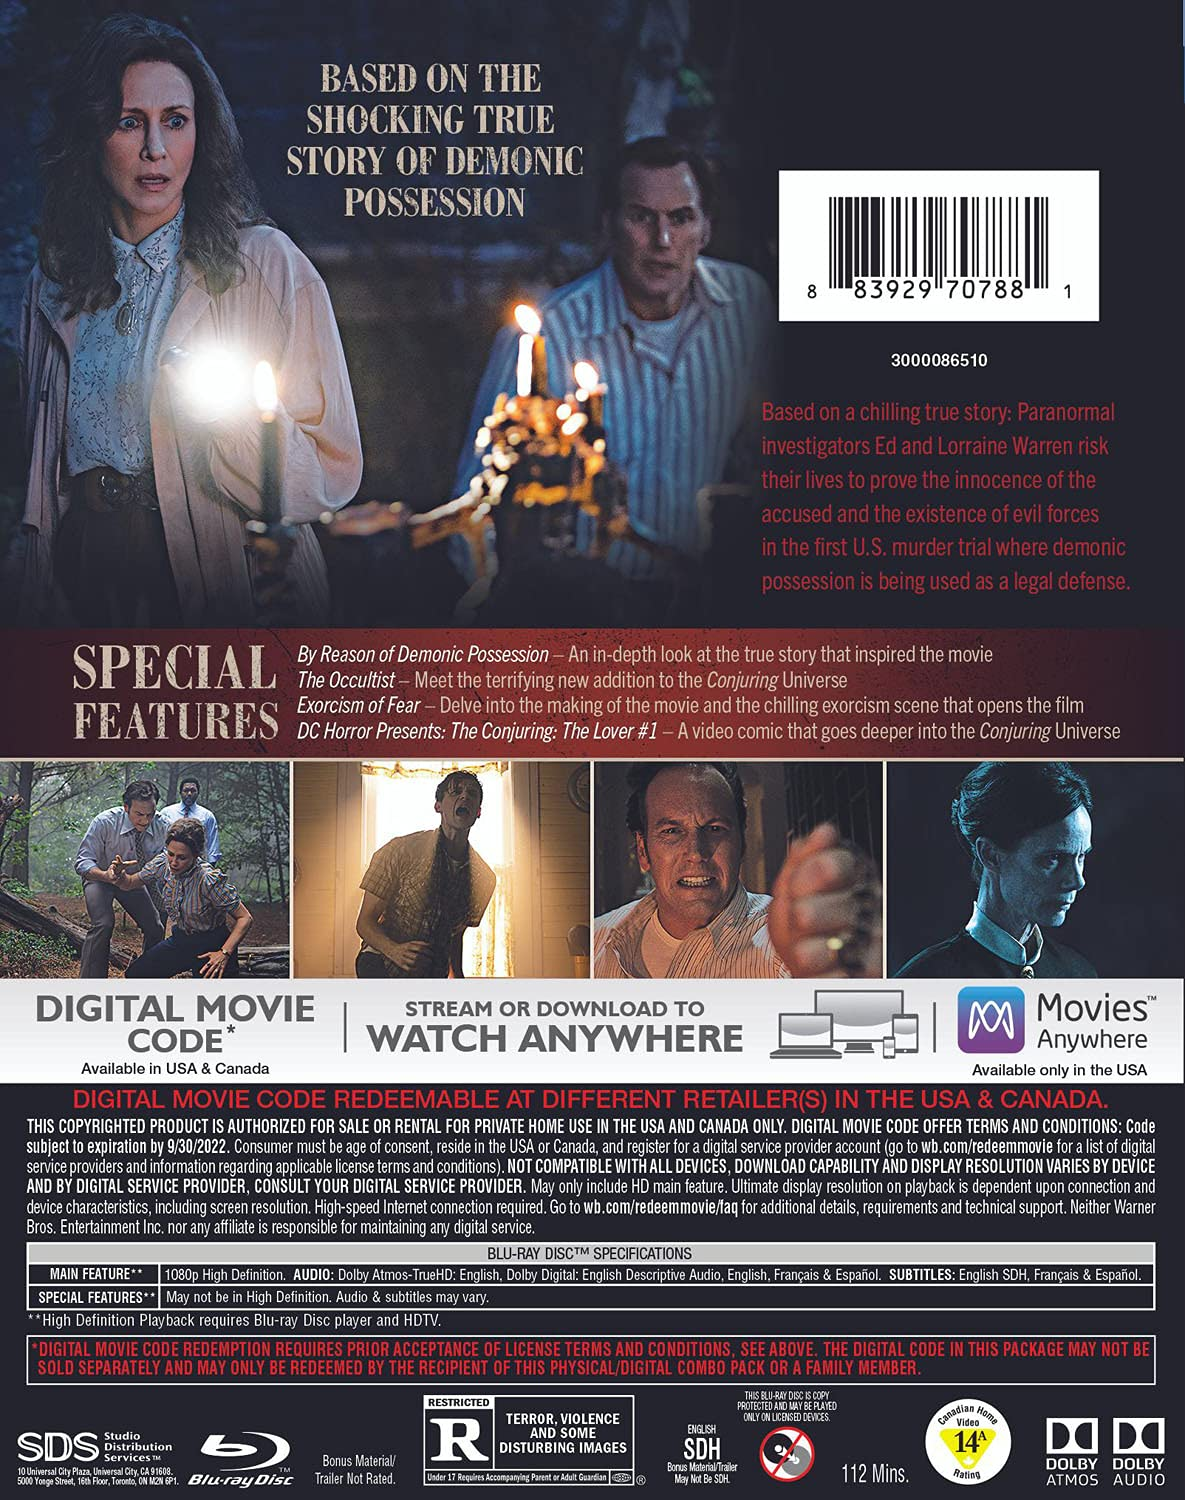 The Conjuring- The Devil Made Me Do It Blu-ray back